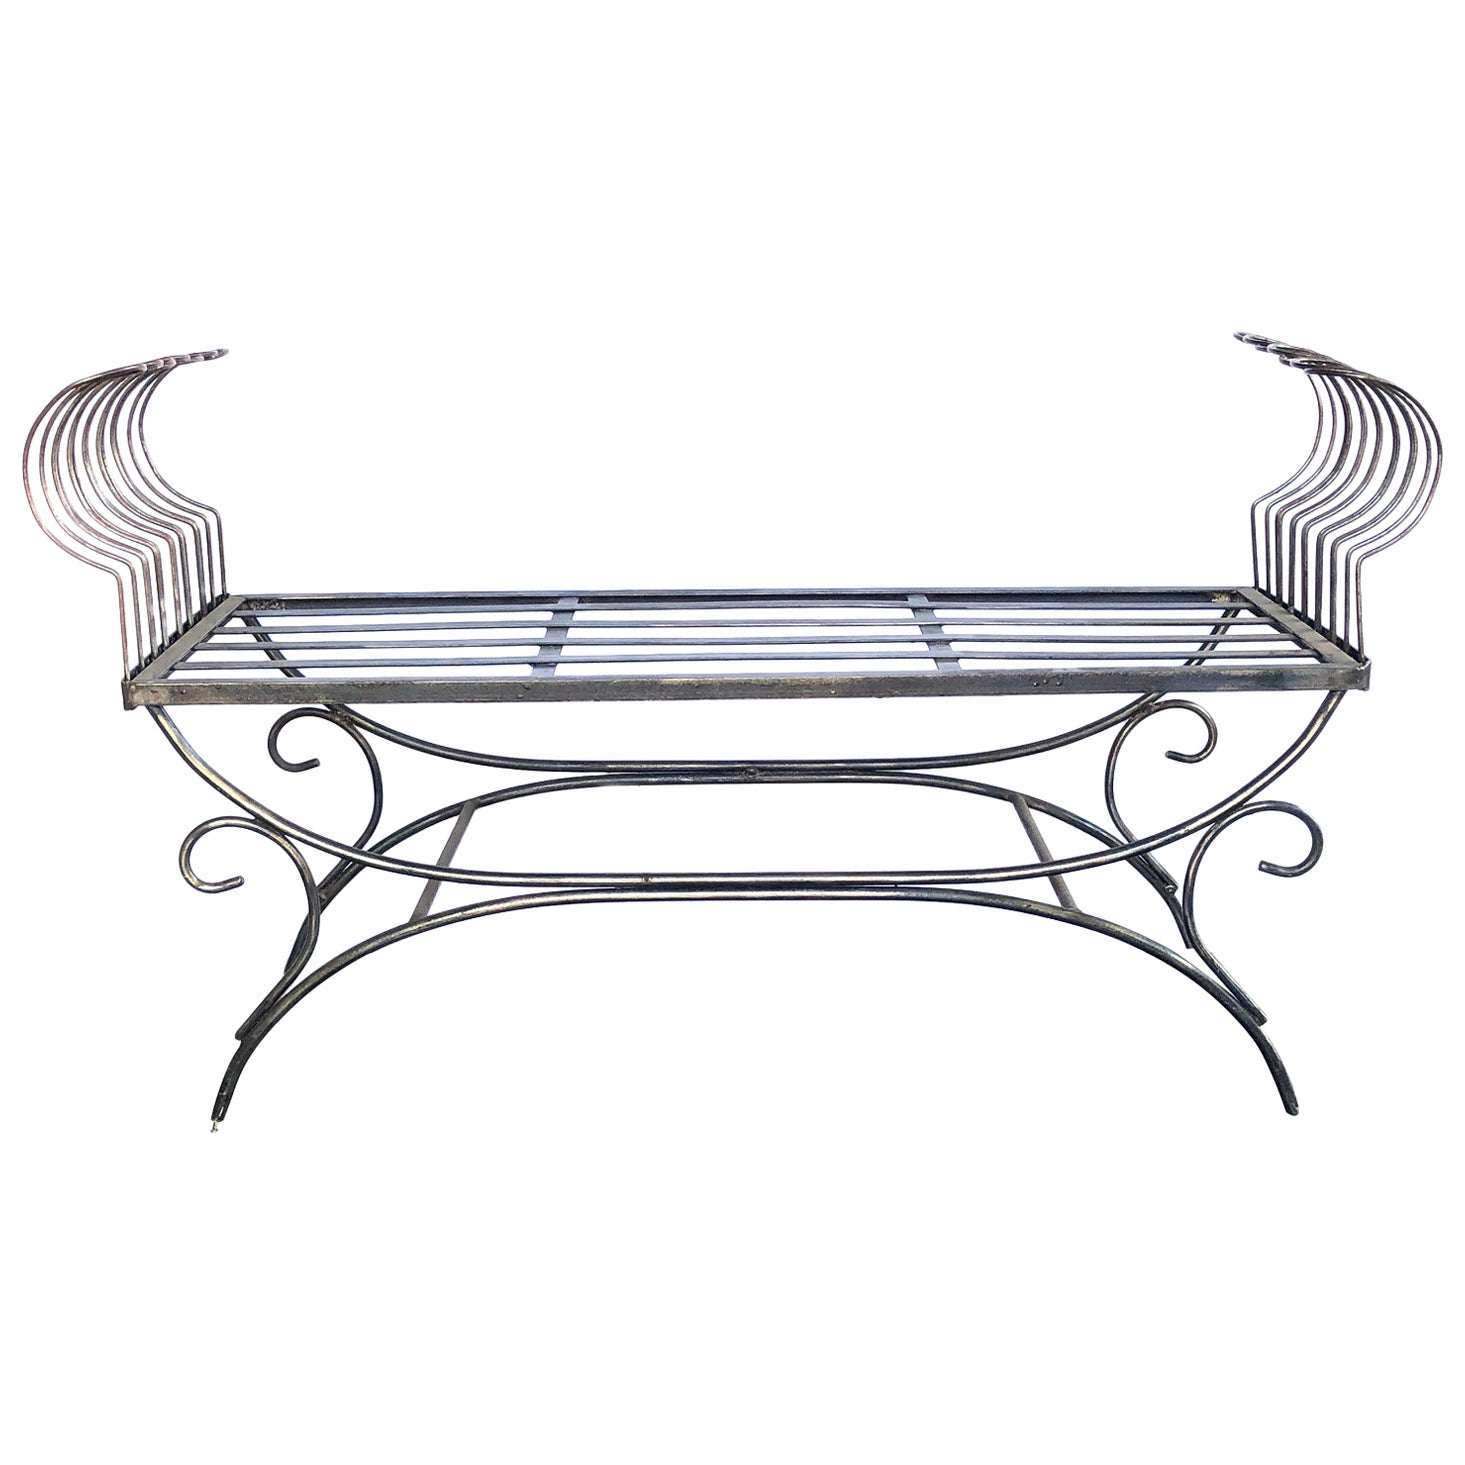 French 1950s Raw Iron Curule-Form Bench with Incurved Arms